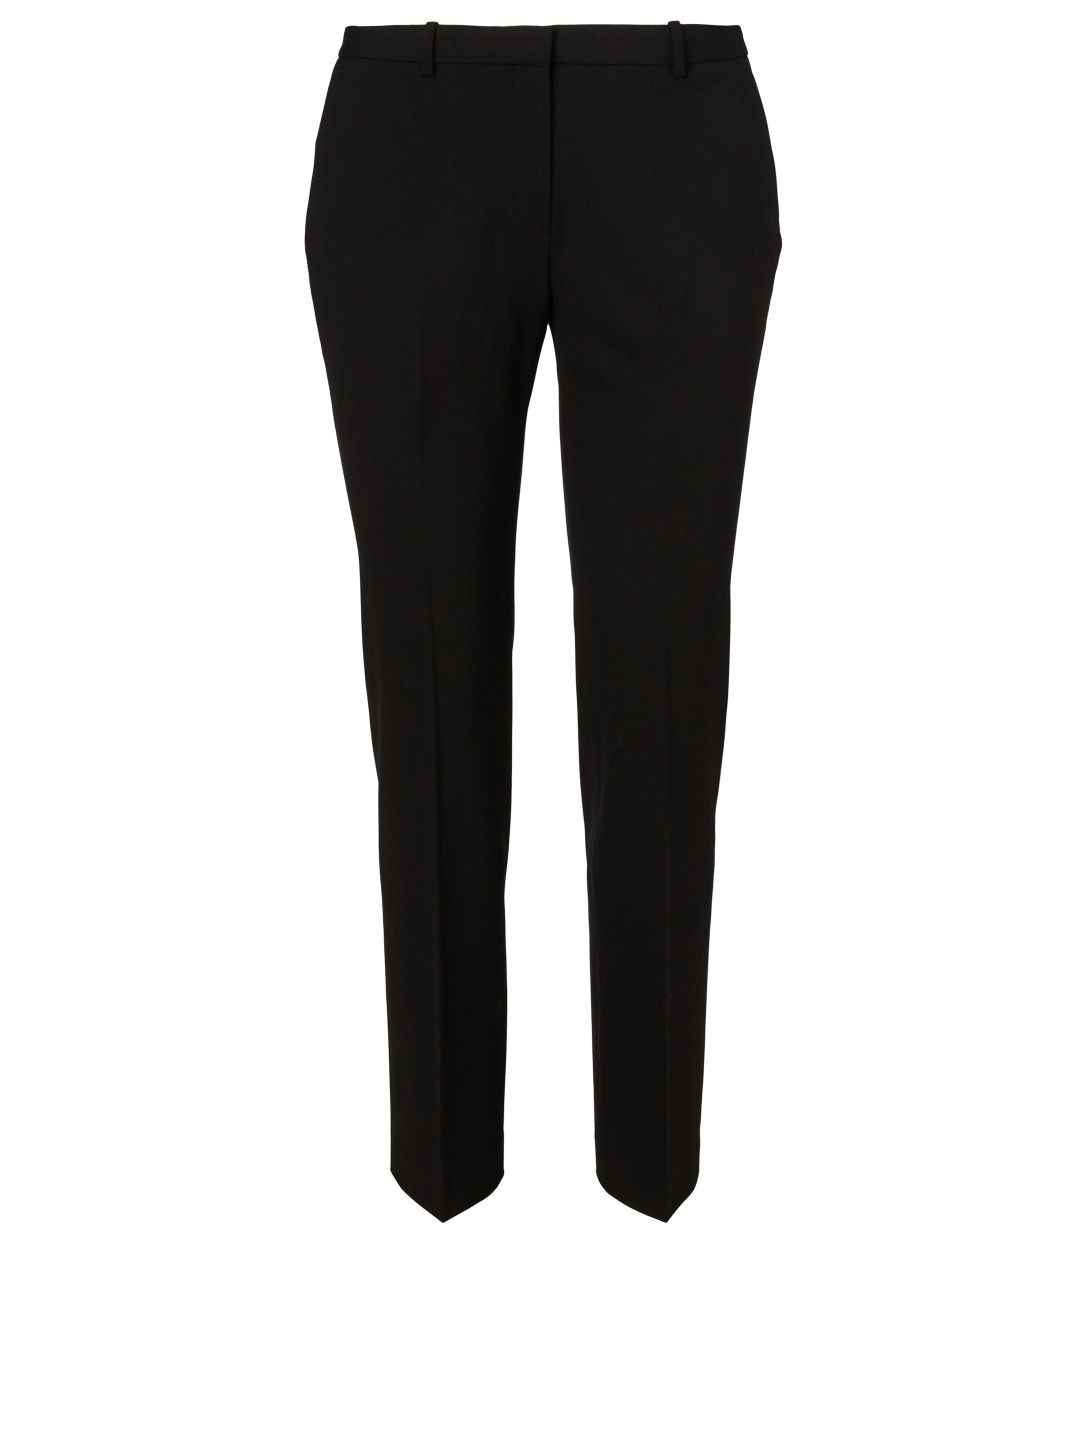 THEORY Hartsdale Wool Stretch Pants Women's Black